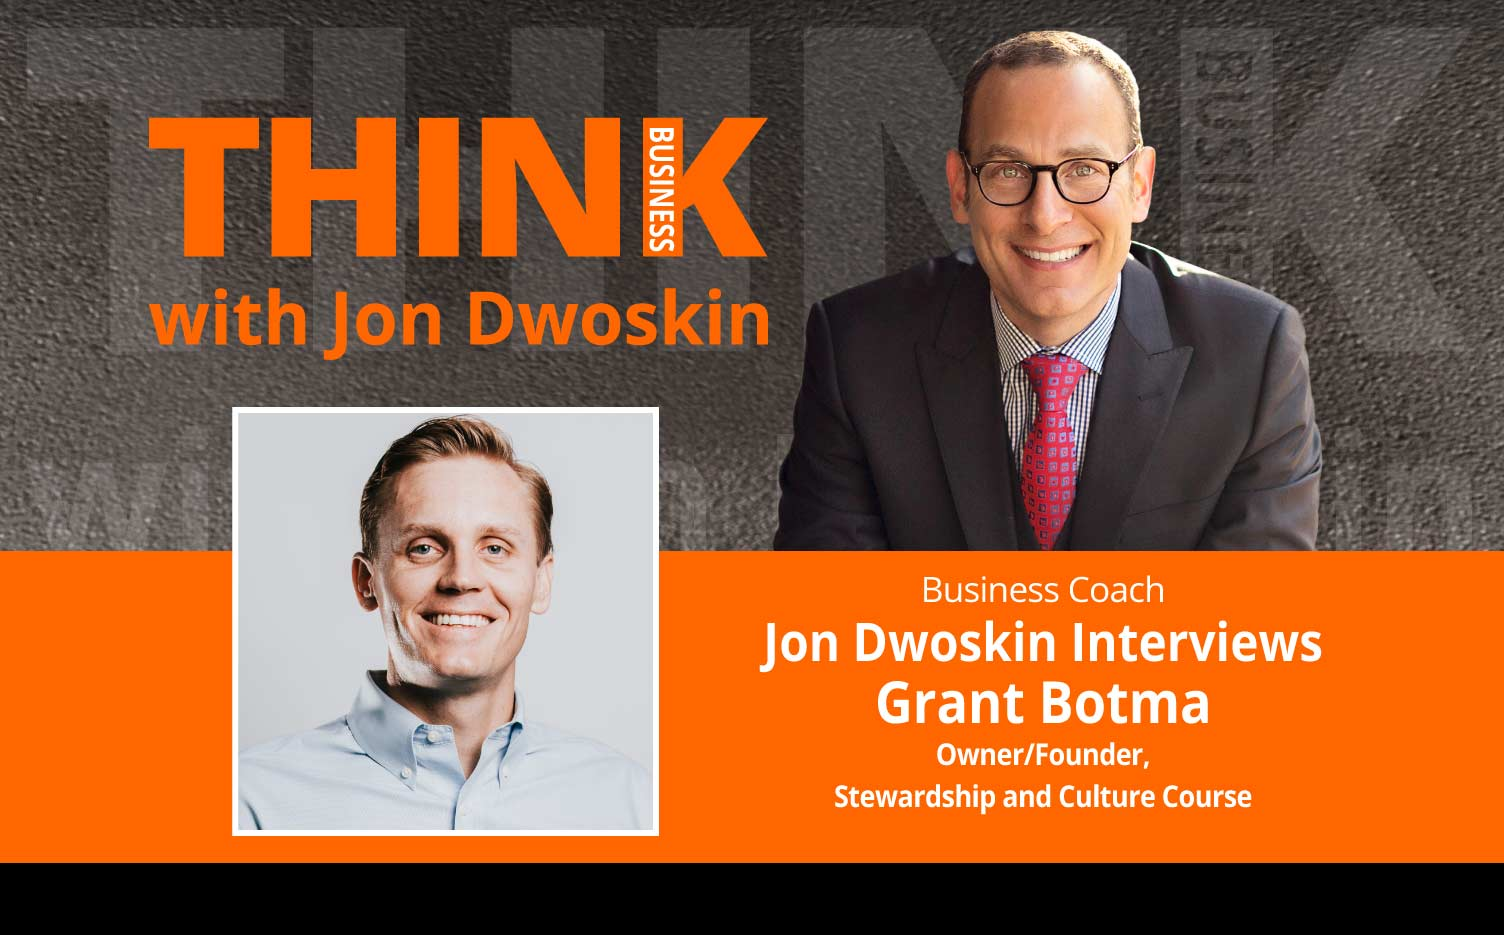 THINK Business Podcast: Jon Dwoskin Interviews Grant Botma, Owner/Founder, Stewardship and Culture Course